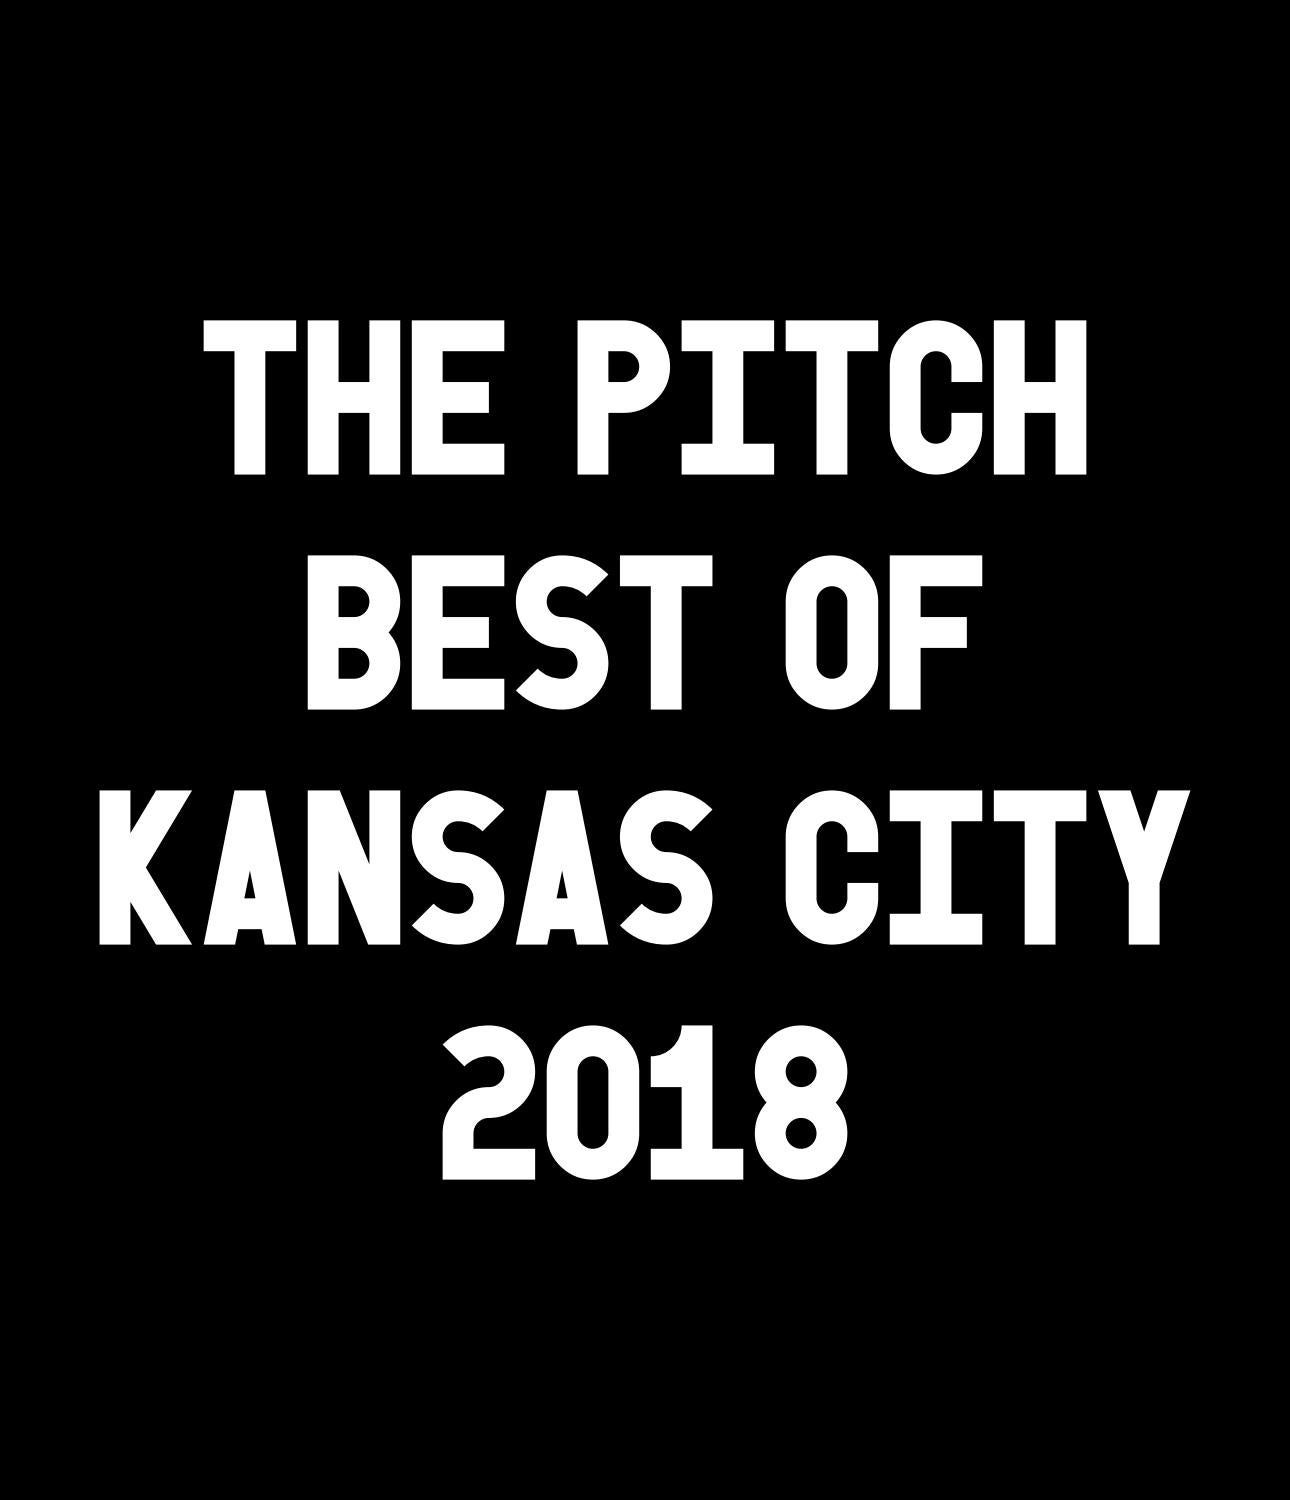 The Pitch: October 2018 by The Pitch - issuu